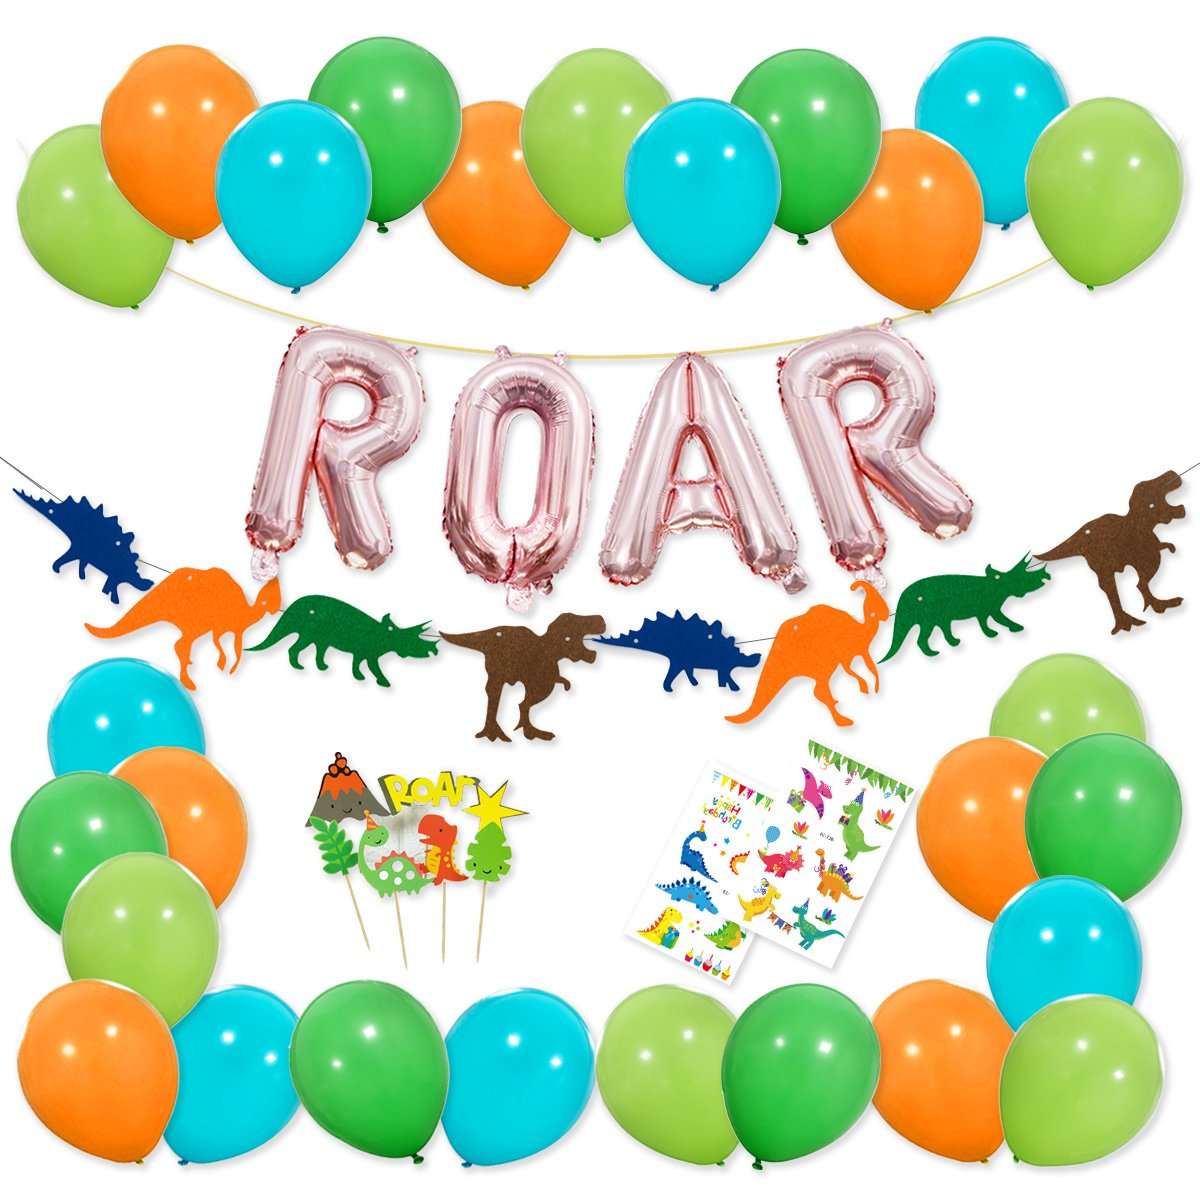 Dinosaur Party Decorations - Rose Gold ROAR Banner Mylar Balloons, Colorful Felt Garland, Dinosaur Cake Topper and Latex Balloons with Tattoo for Dino Jungle Jurassic Dinosaur Birthday Party Supplies Haptda